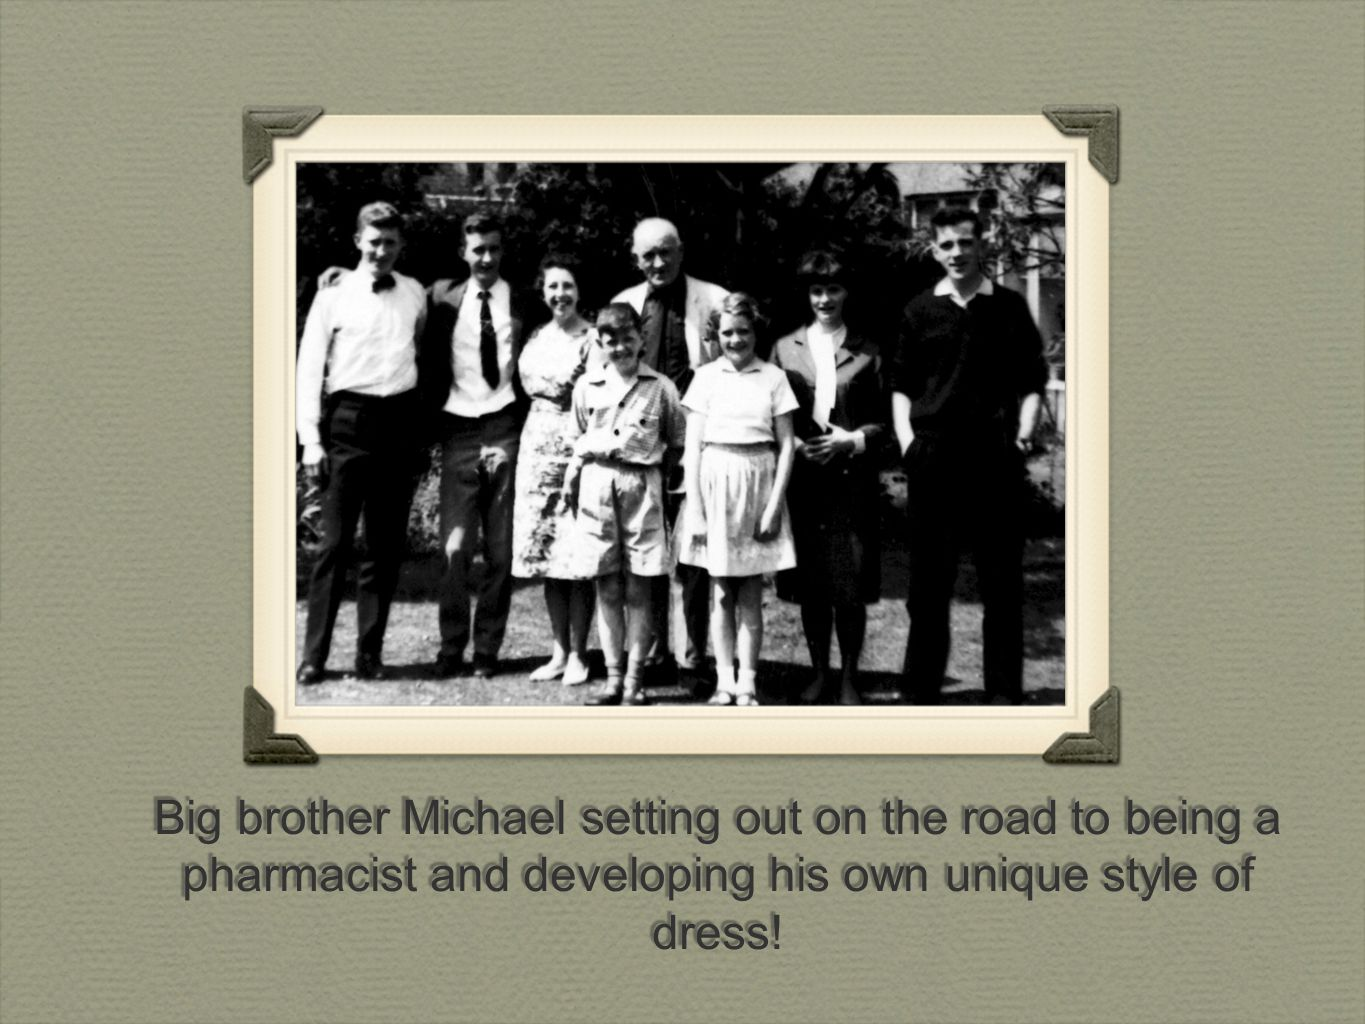 Big brother Michael setting out on the road to being a pharmacist and developing his own unique style of dress!